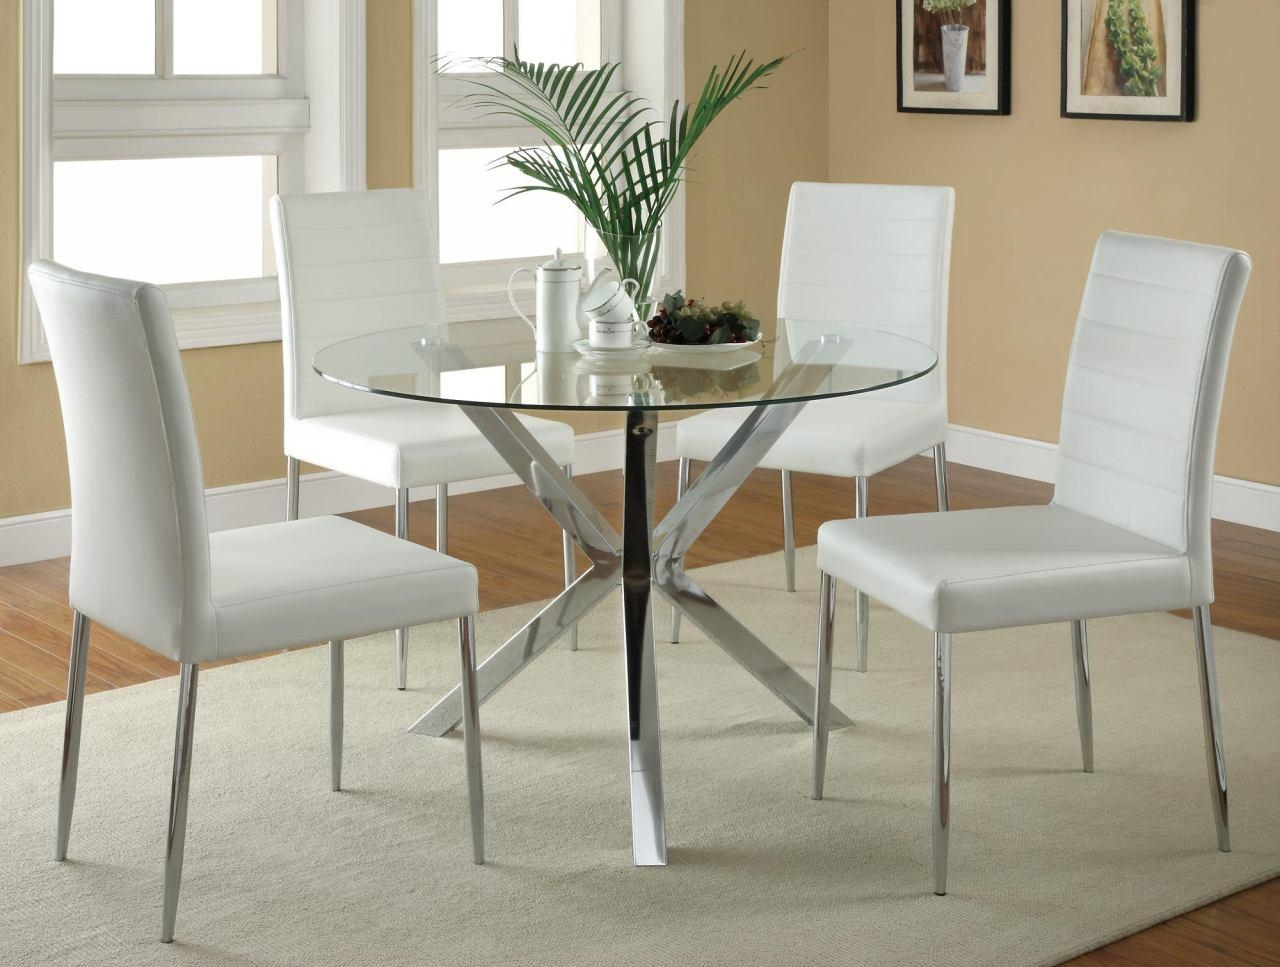 Coaster Vance Glass Top W/ Chrome Base Dining Set W/ White Chairs Within Dining Table With Sofa Chairs (View 19 of 20)